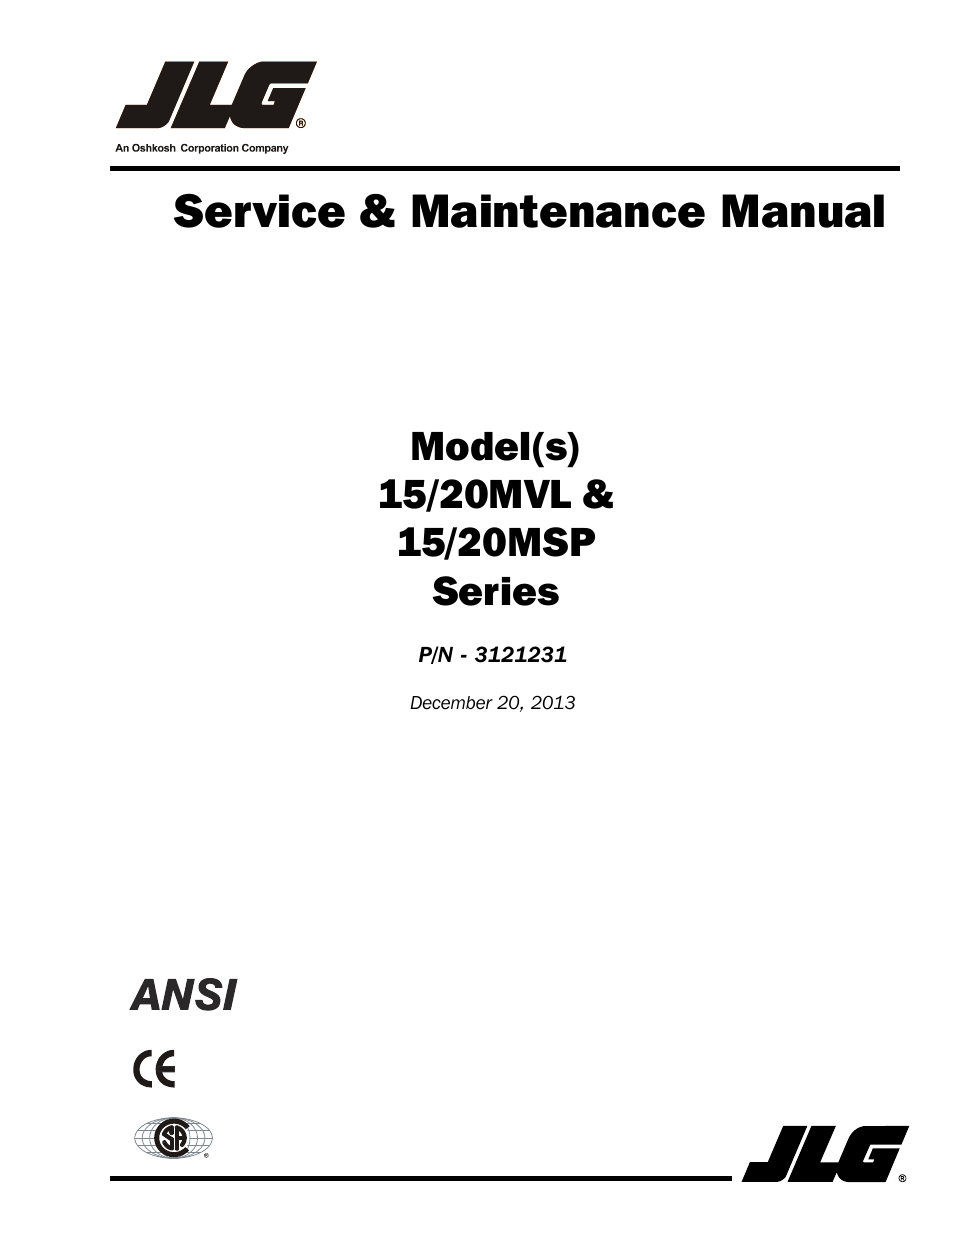 jlg 20mvl wiring diagram wiring library jlg 15 20msp service manual user manual 174 pages also for 15